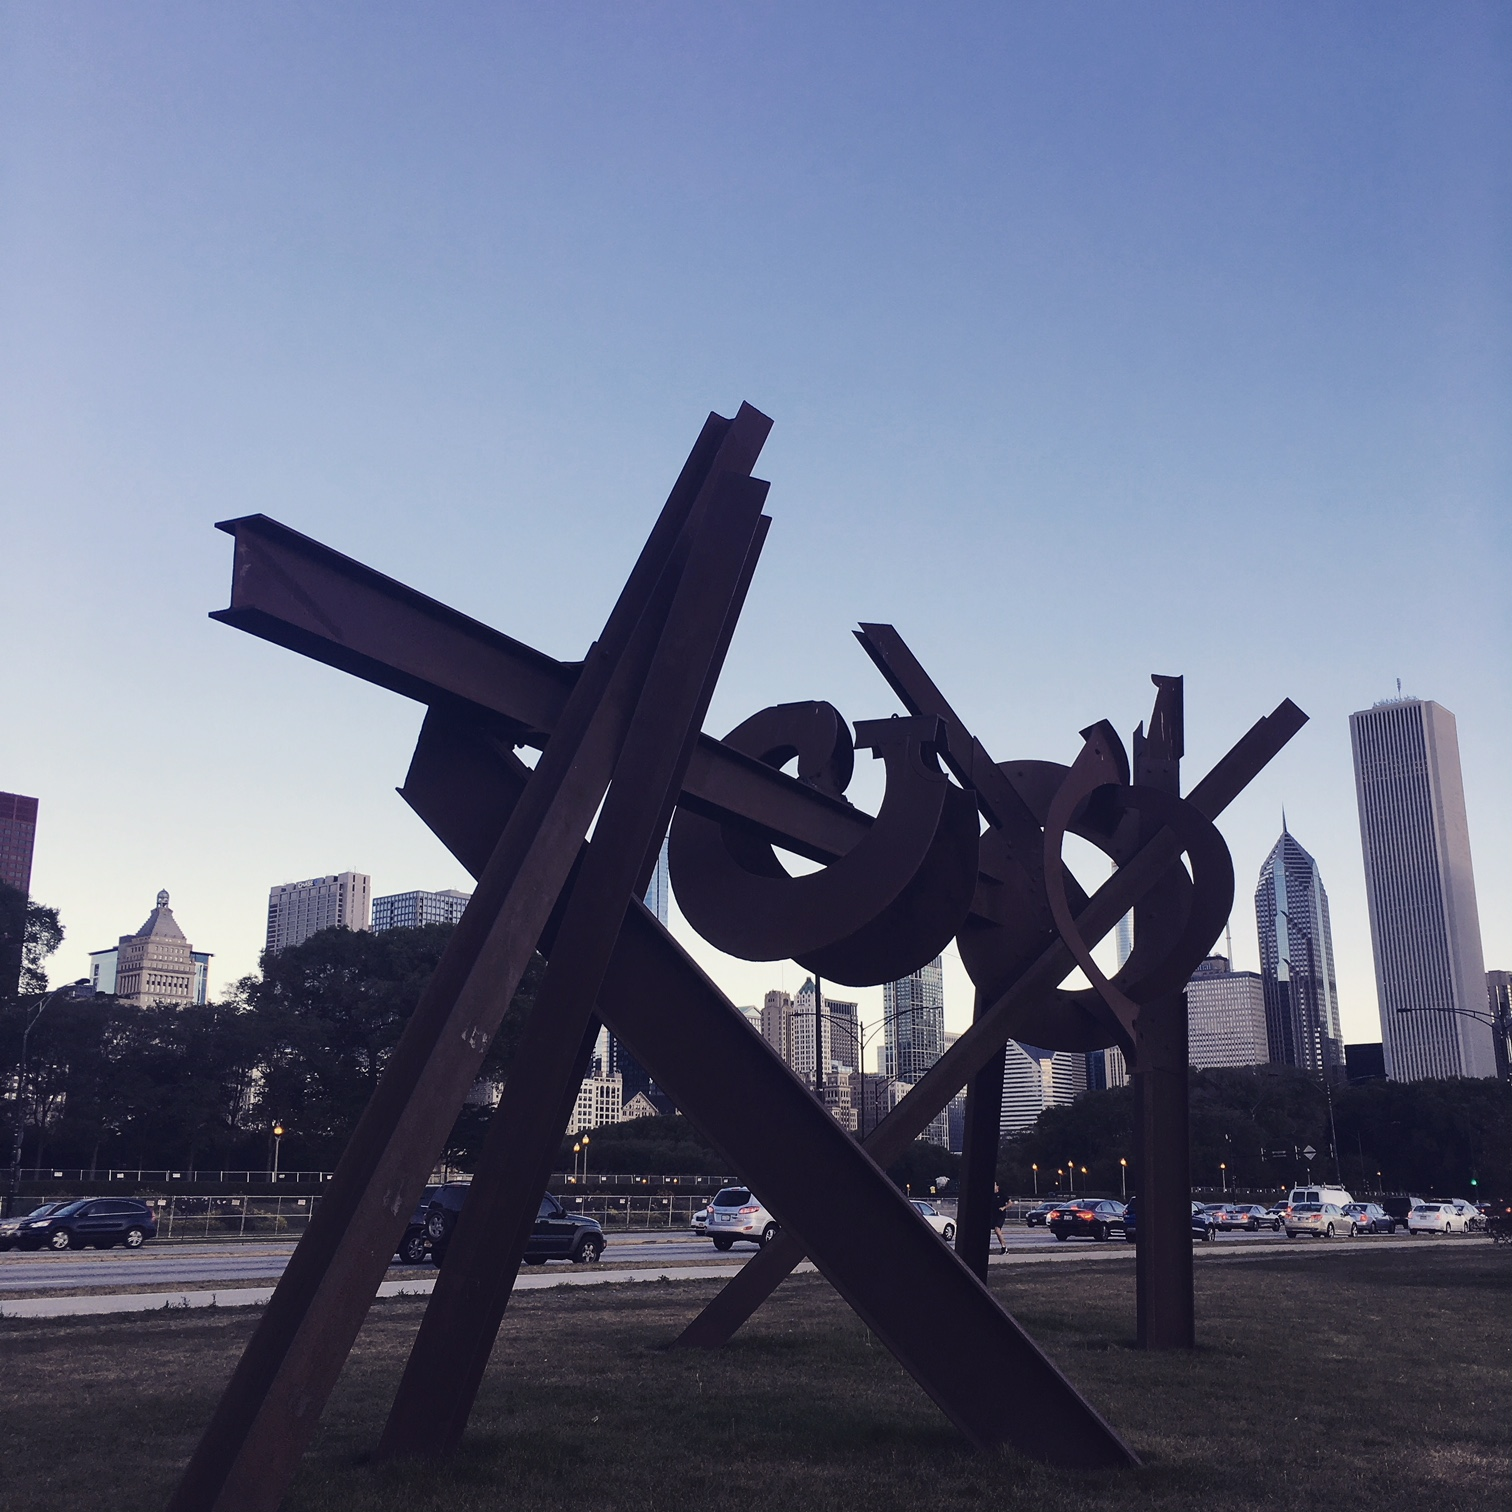 """Magma 2008-11"" by Mark di Suvero in Chicago. (Photo by Mara Vlatkovic)"